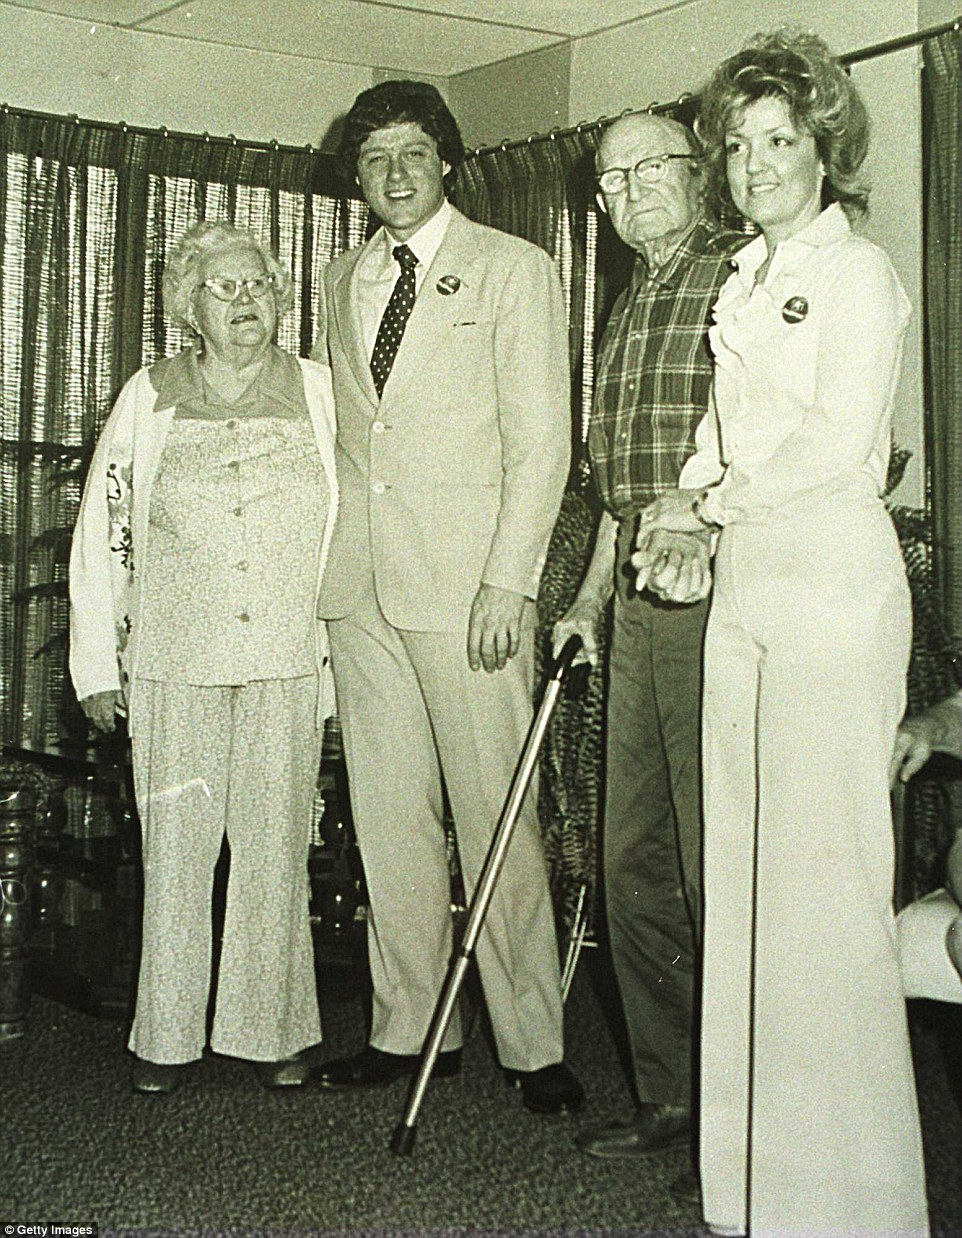 FLASHBACK: Juanita Broaddrick's encounter with Bill Clinton was in 1978, when this picture was taken